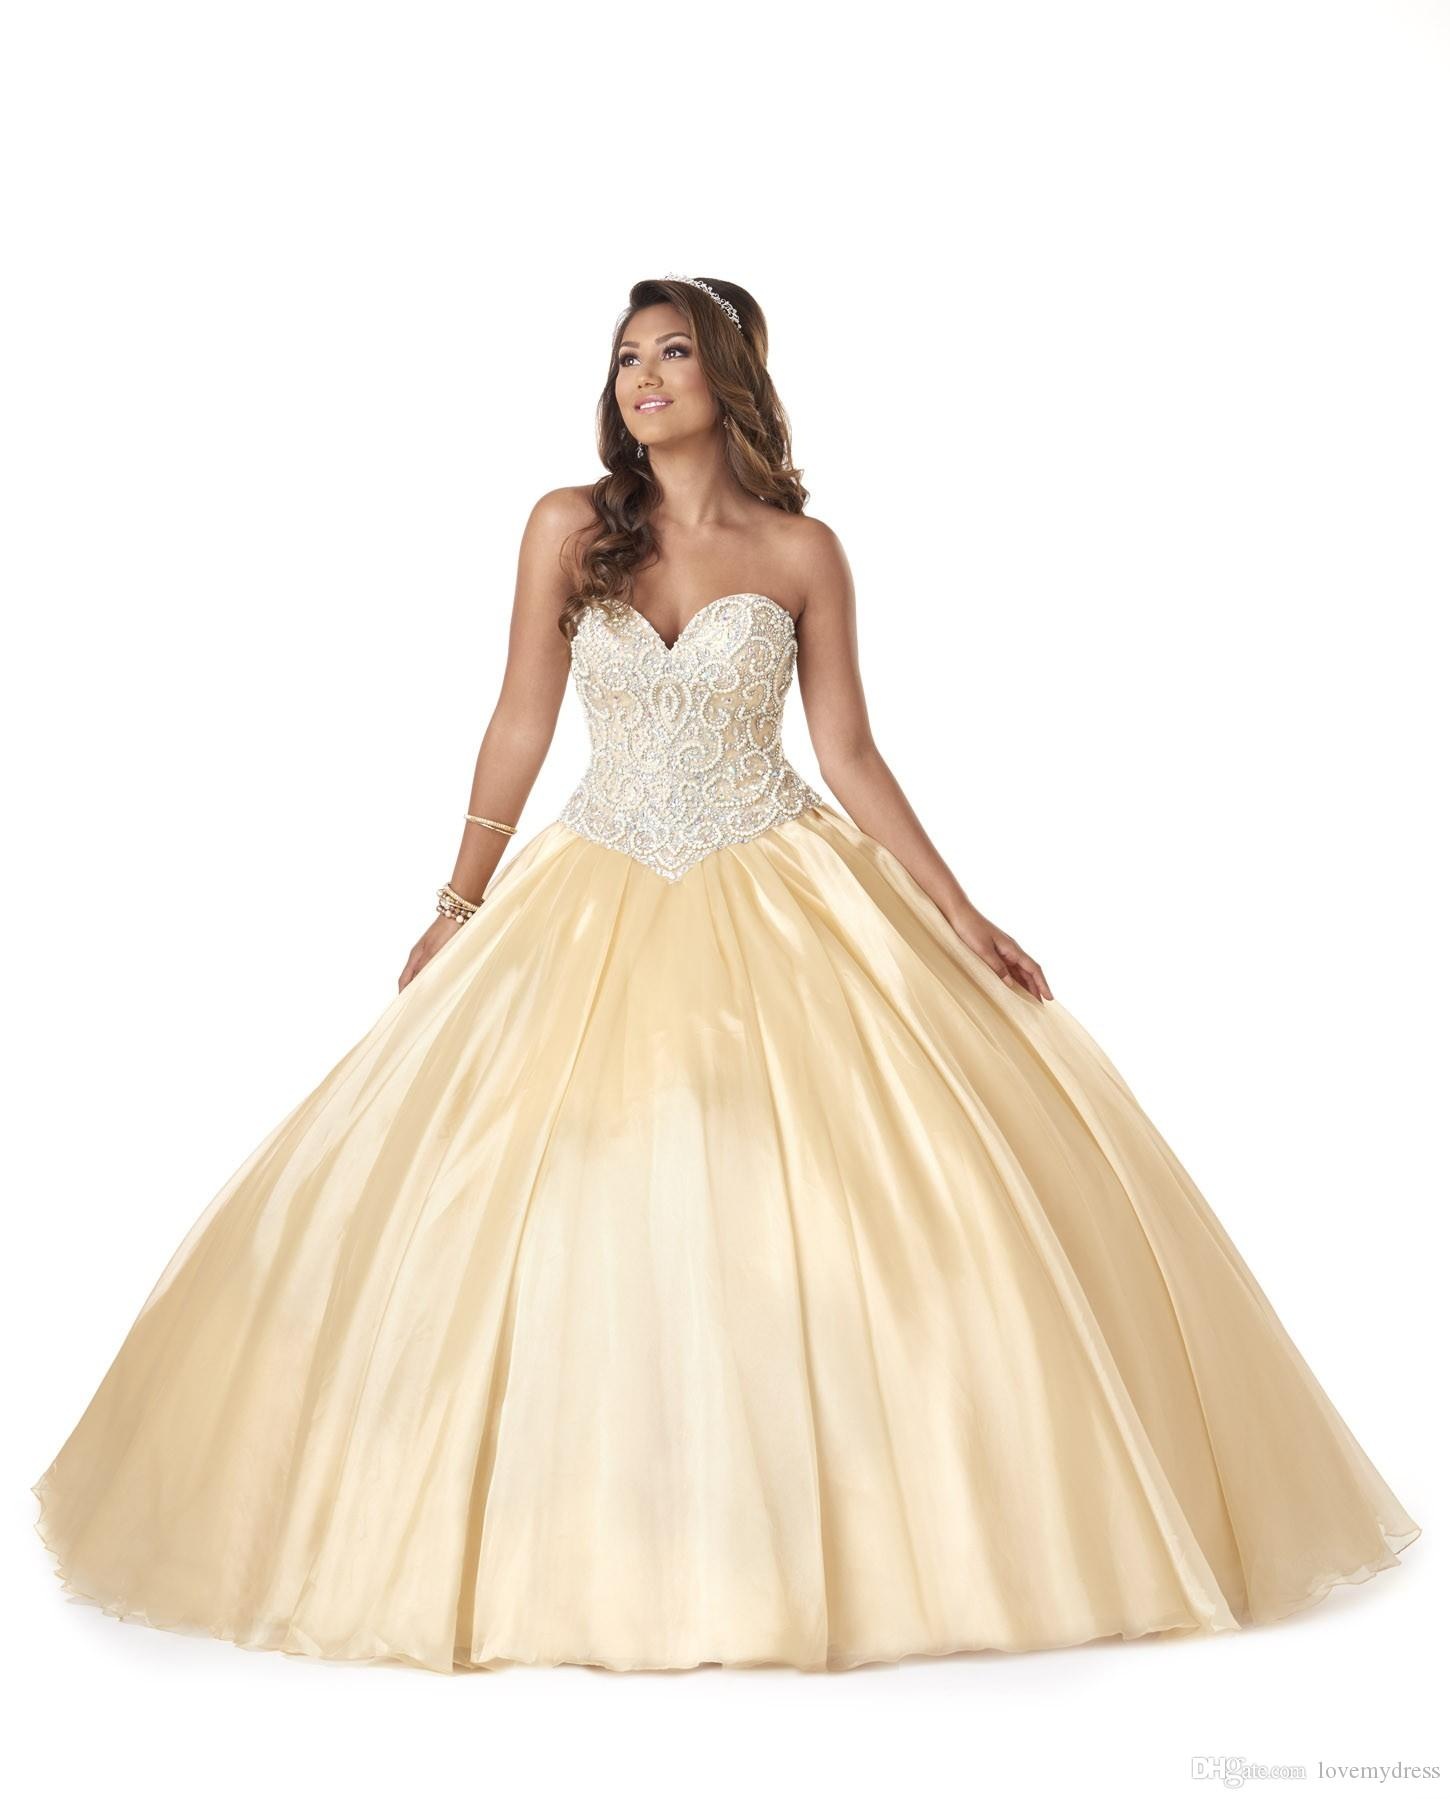 Quinceanera Dress Inexpensive Pearl Crystals Sparked Dresses With Jacket Elegant Lace Up Back Cheap Price Ball Gown Prom Pageant Dresses